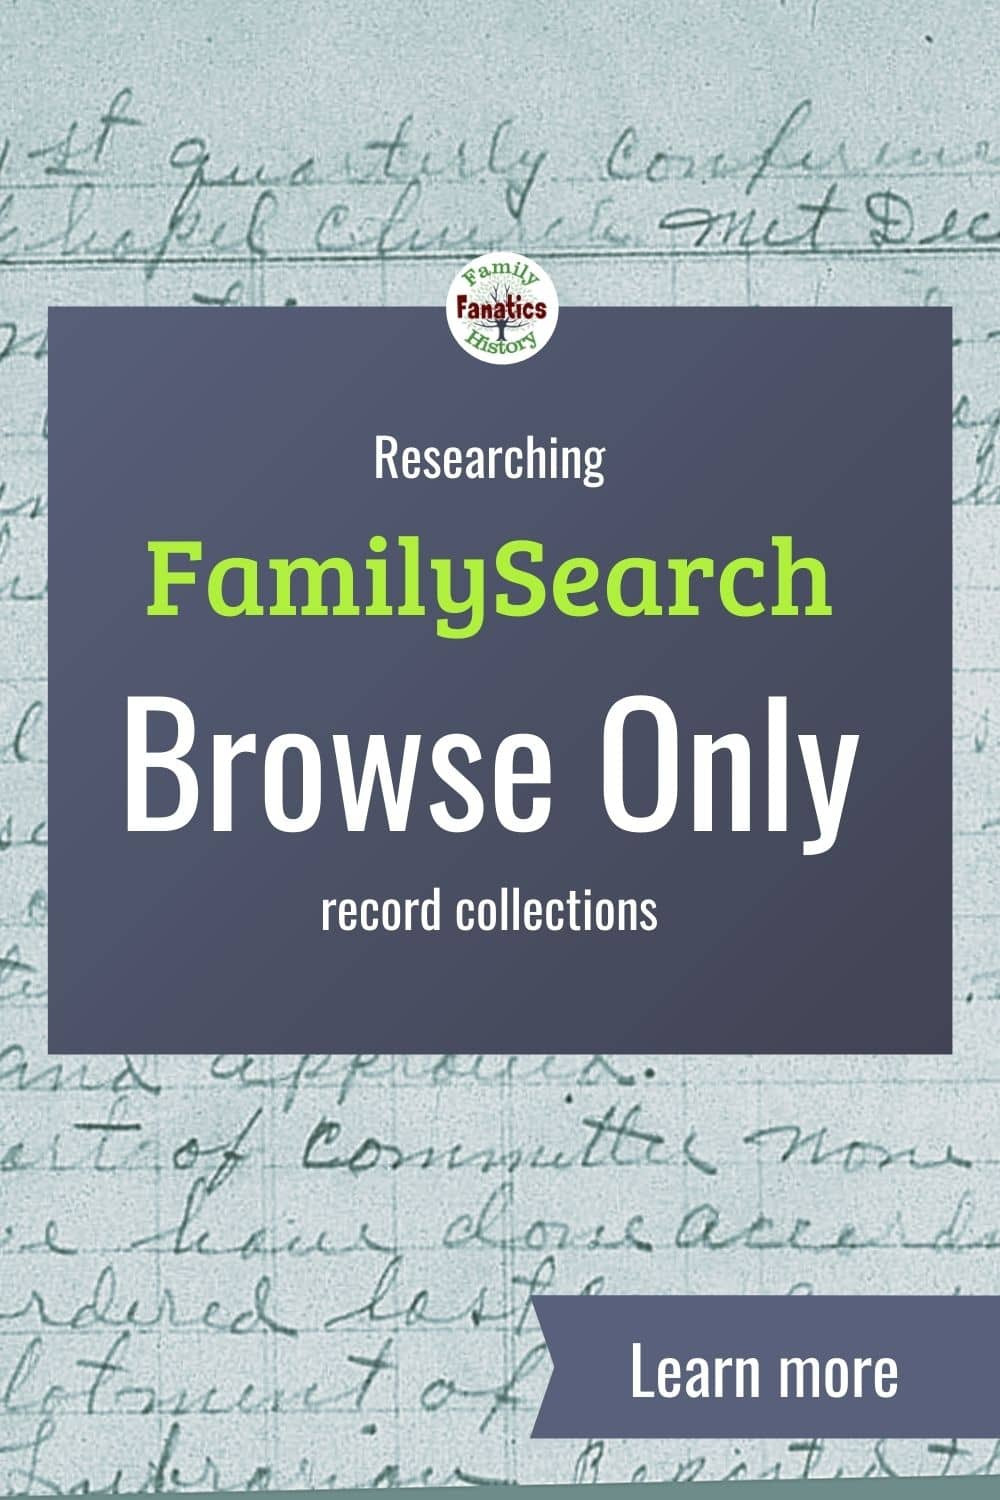 Church records from FamilySearch with title researching FamilySearch Browse Only images